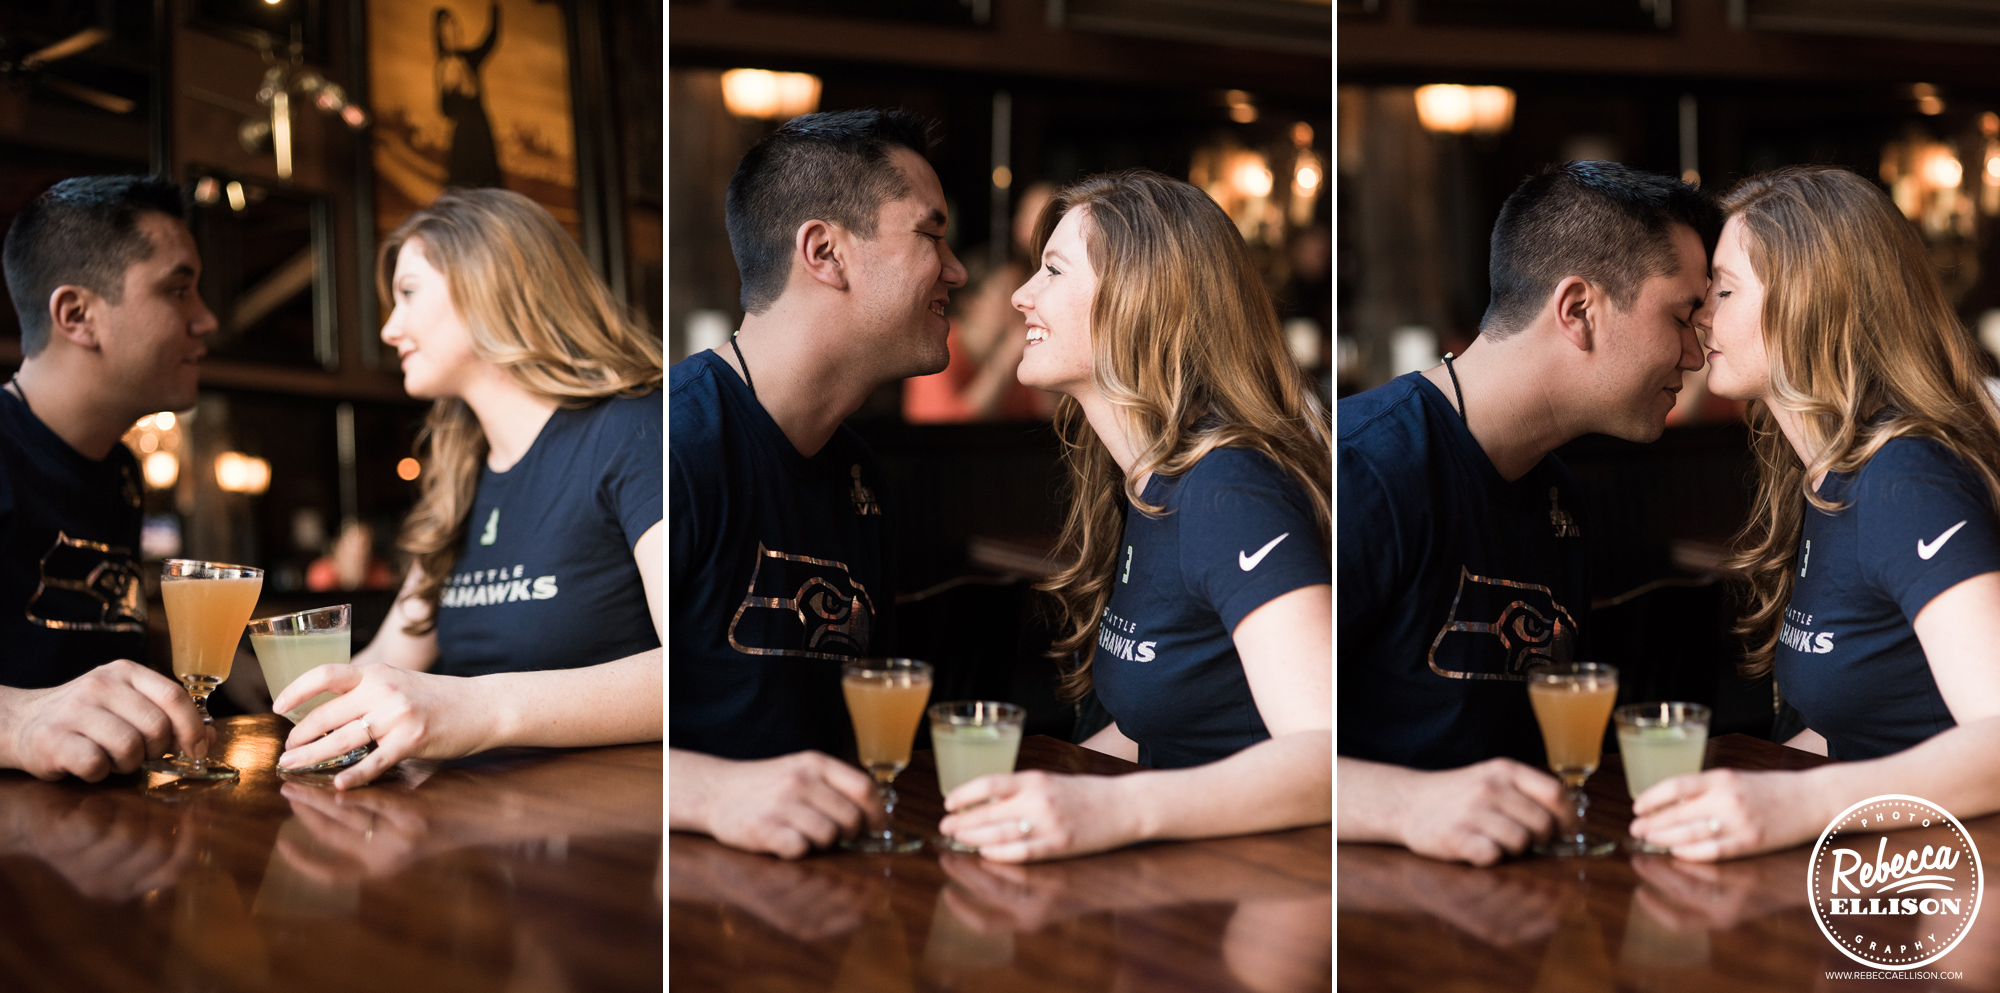 Seahawks t-shirts and coktails at the Bastille Bar highlight this Ballard engagement portrait session photographed by Ballard engagement photographer Rebecca Ellison